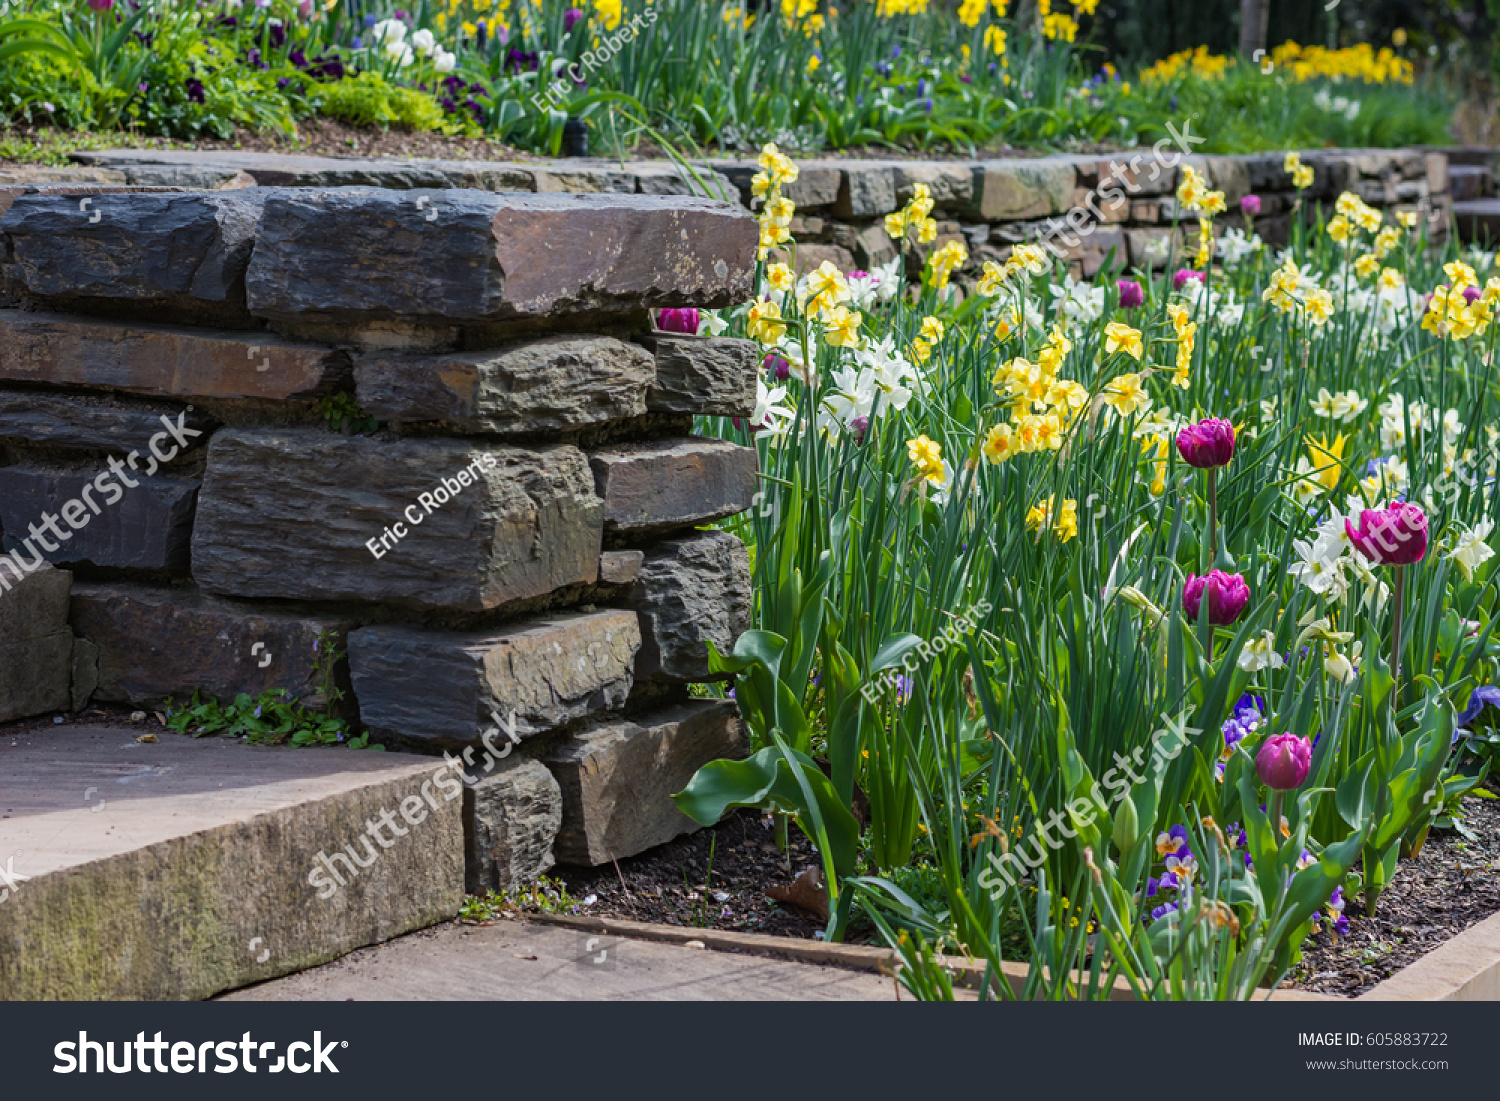 Botanical garden planting spring flowers by stock photo 100 legal botanical garden planting spring flowers by a stone wall at duke gardens mightylinksfo